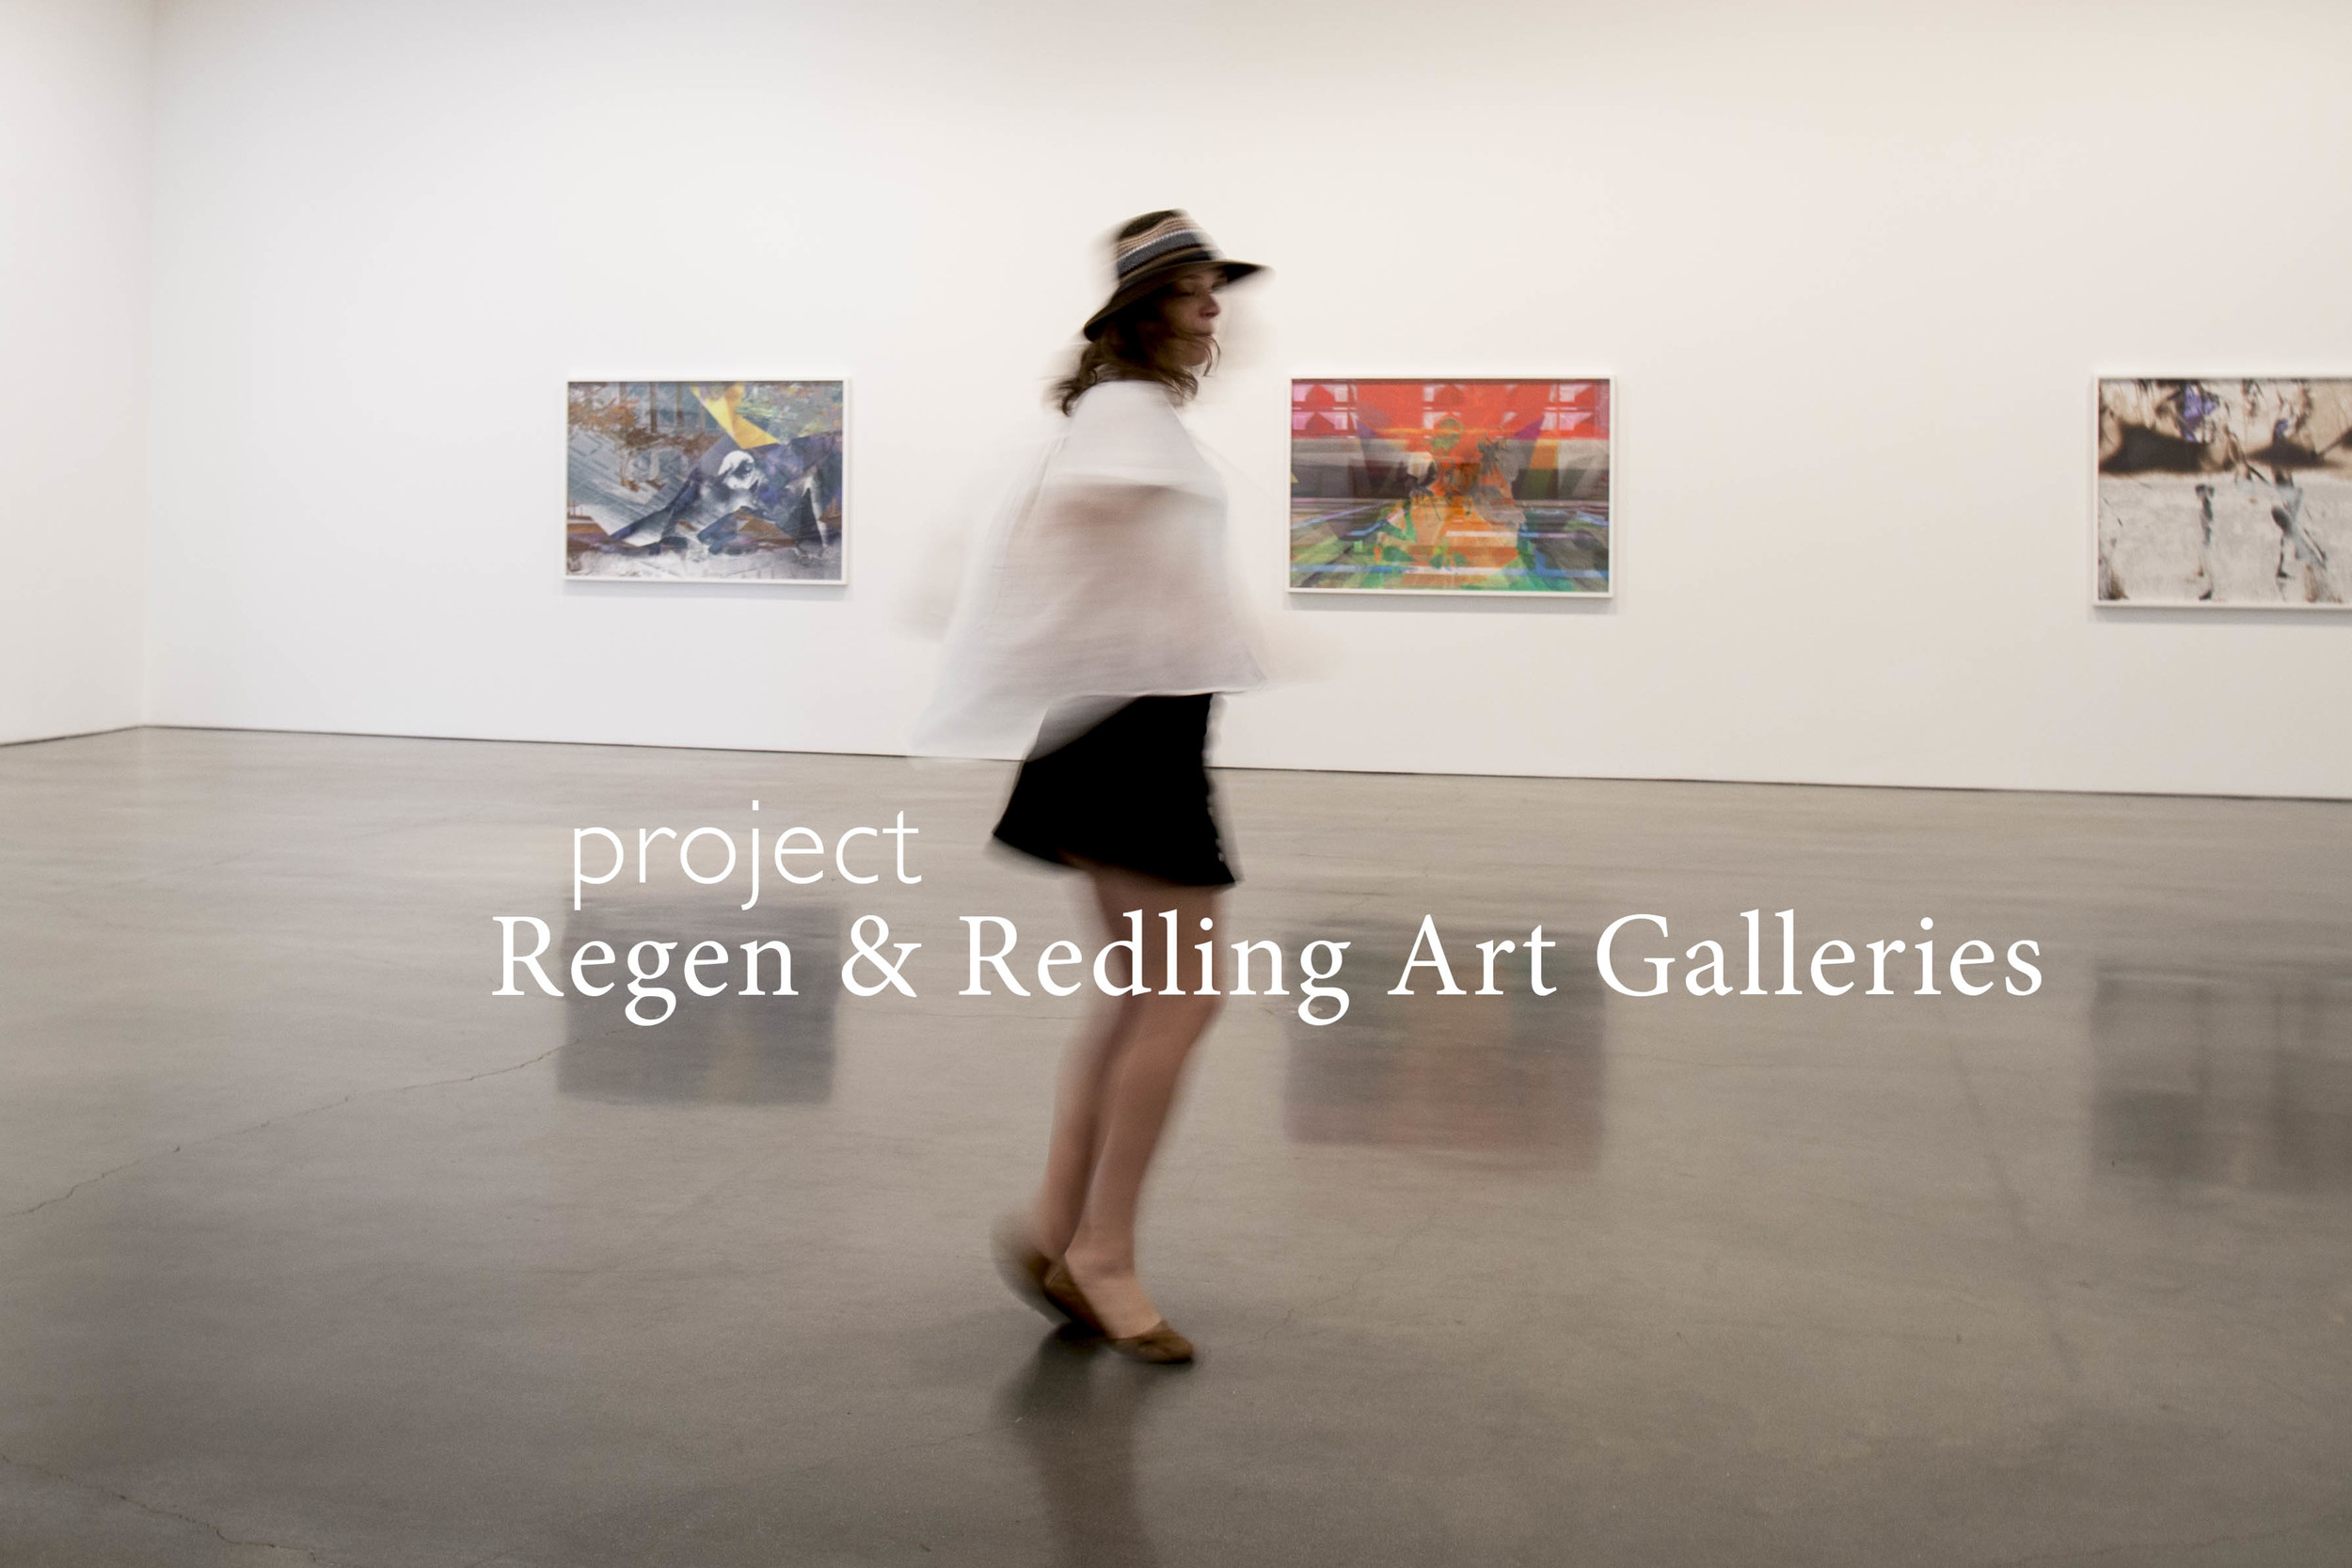 REDLING FINE ART & REGEN PROJECTS, two contemporary art galleries in Hollywood.